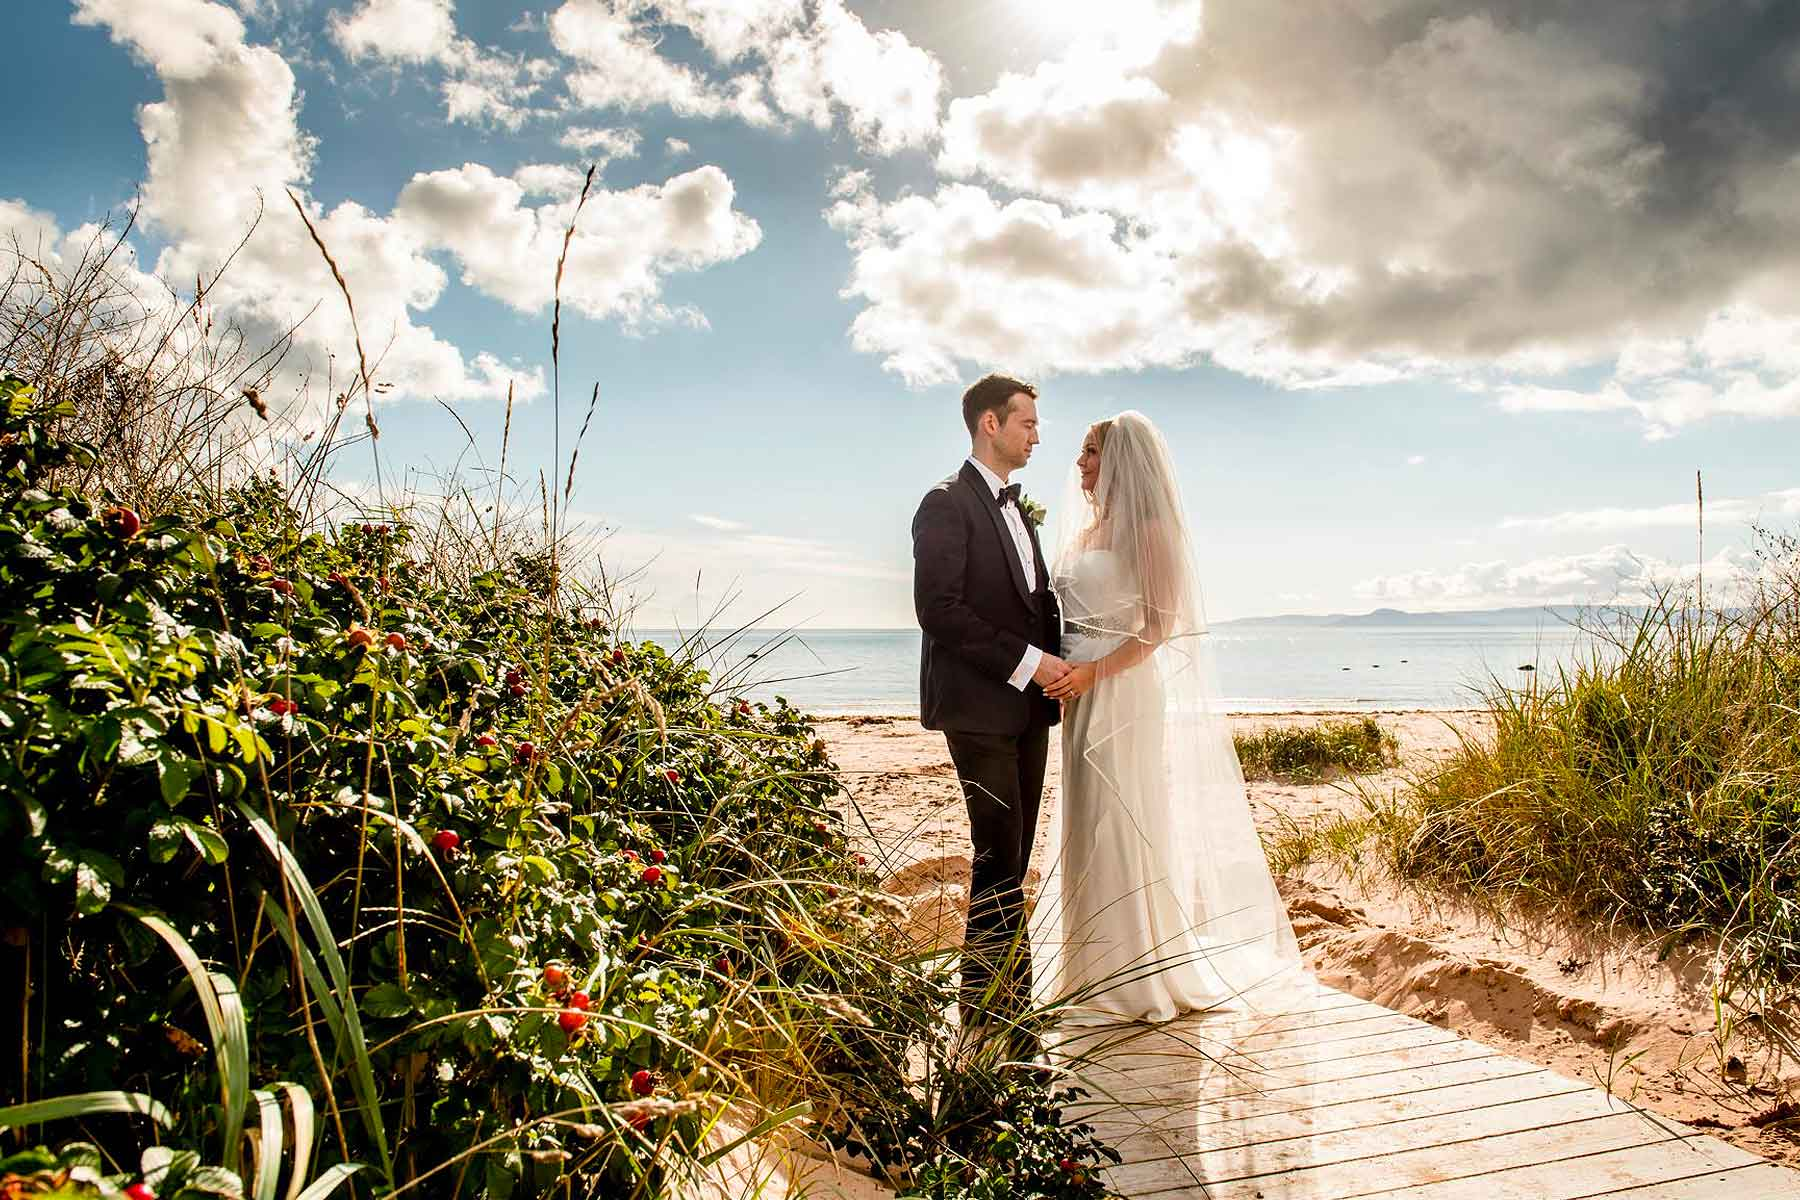 Jade and Steven's Waterside Wedding